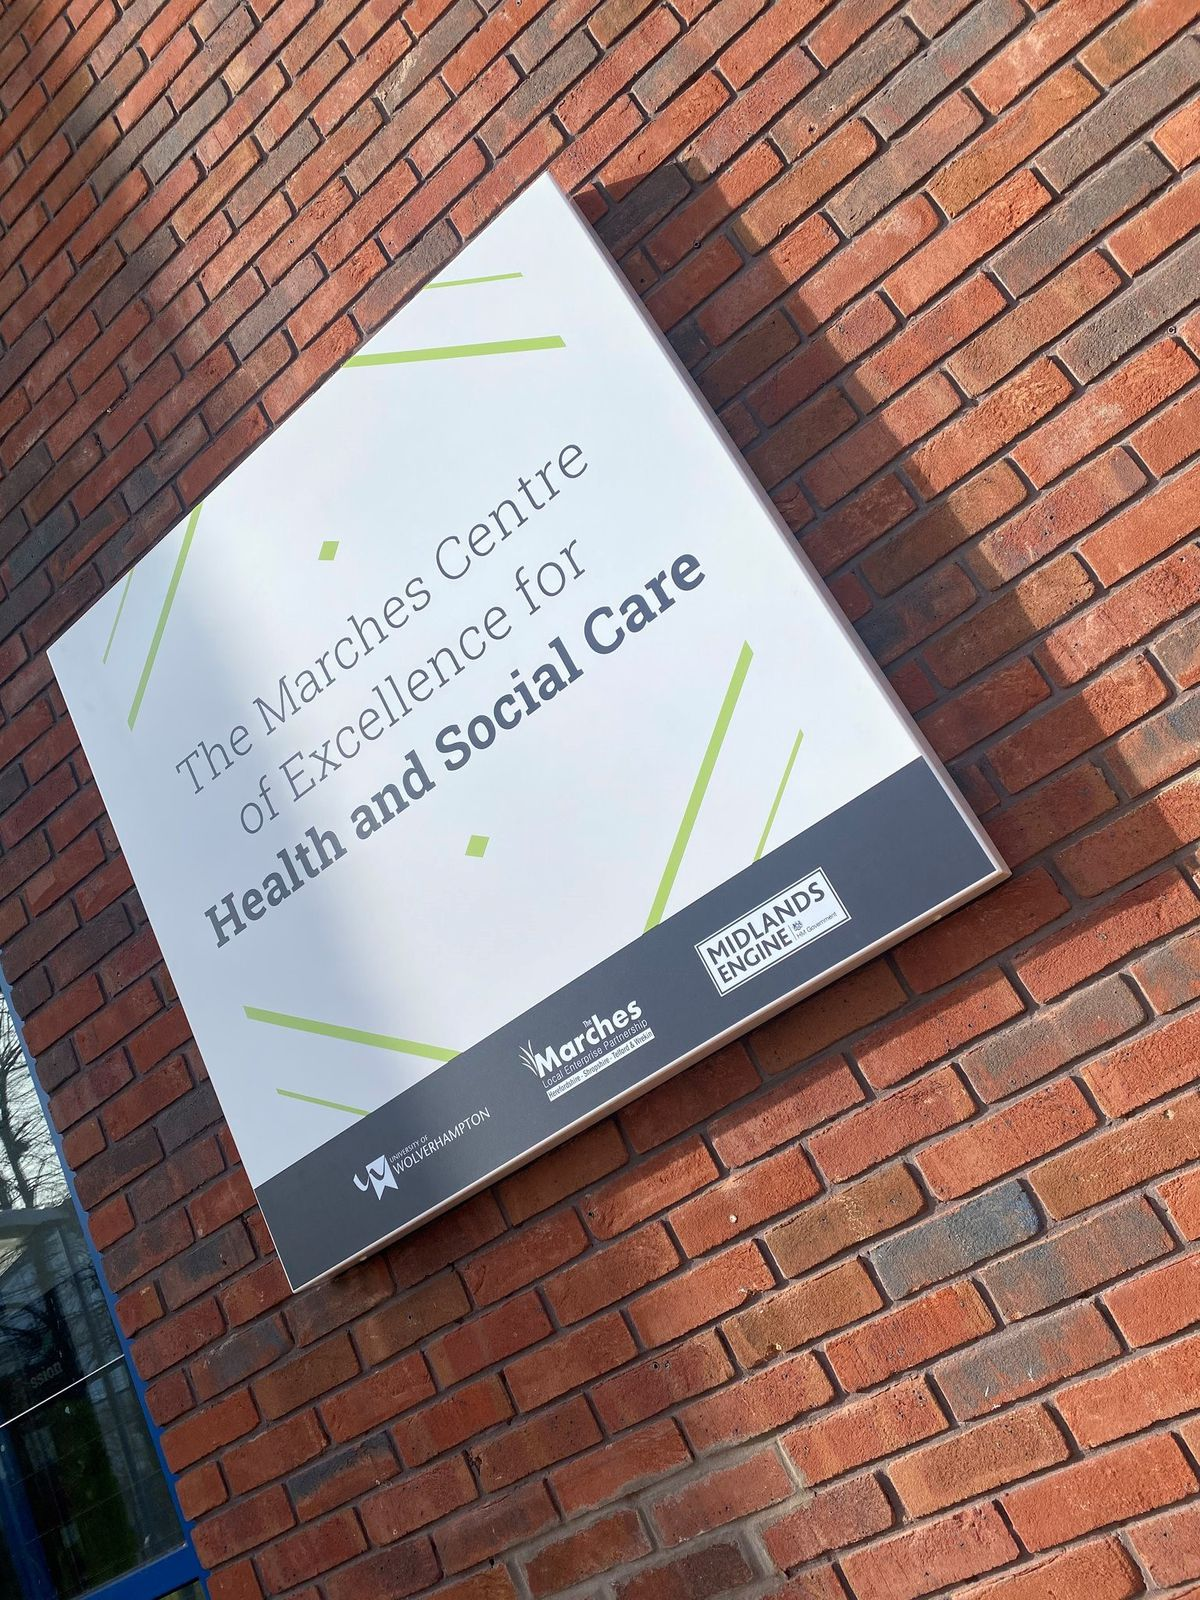 Marches Centre of Excellence for Health and Social Care will open to students next month